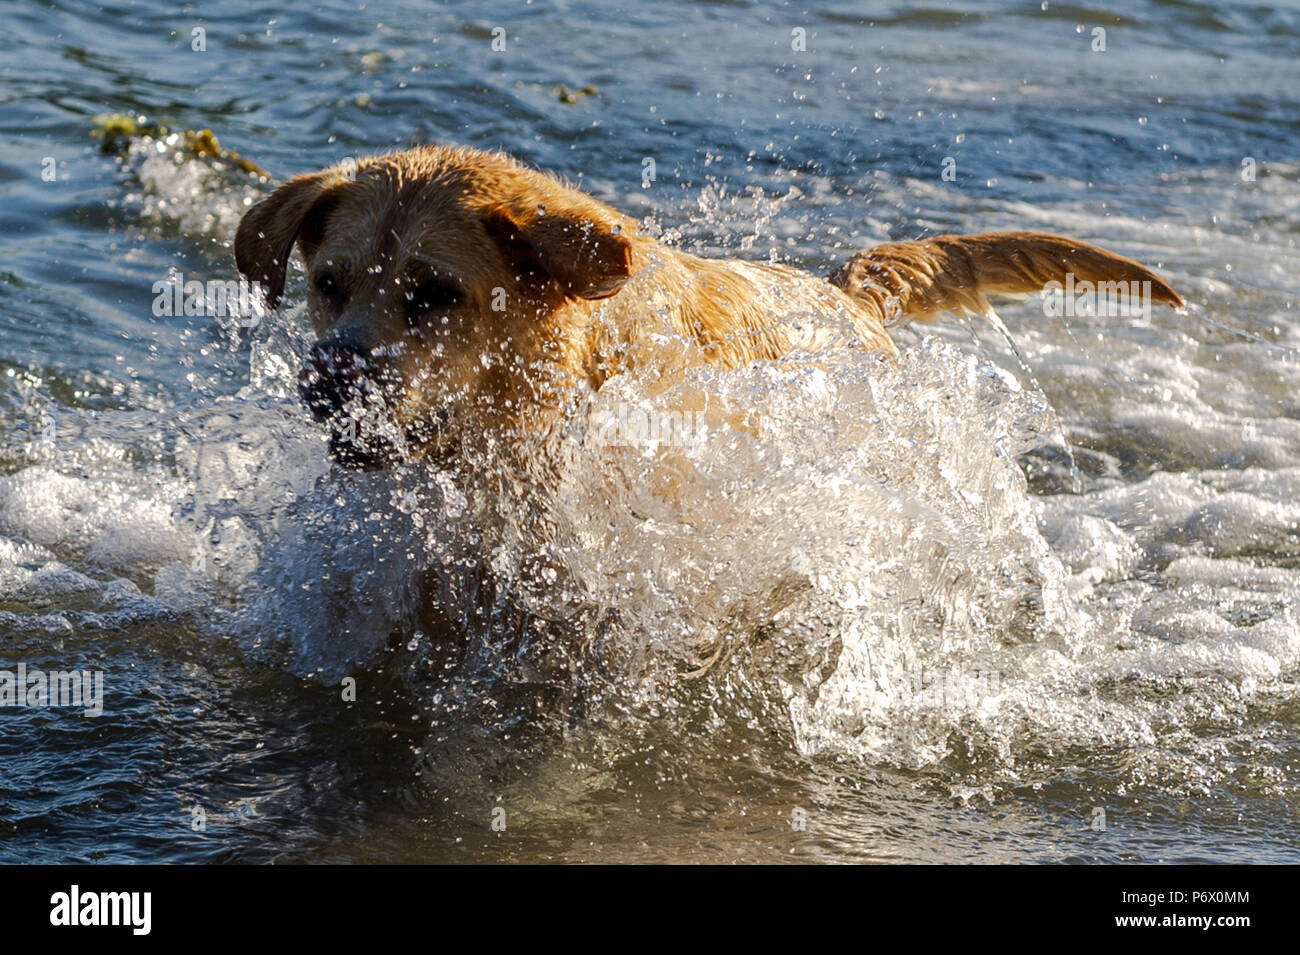 schull-west-cork-ireland-3rd-july-2018-lucy-the-7-year-old-golden-labrador-plays-in-the-sea-this-evening-the-heatwave-shows-no-sign-of-ending-with-temperatures-forecast-to-be-in-the-high-20s-celsius-for-at-least-a-week-credit-andy-gibsonalamy-live-news-P6X0MM.jpg